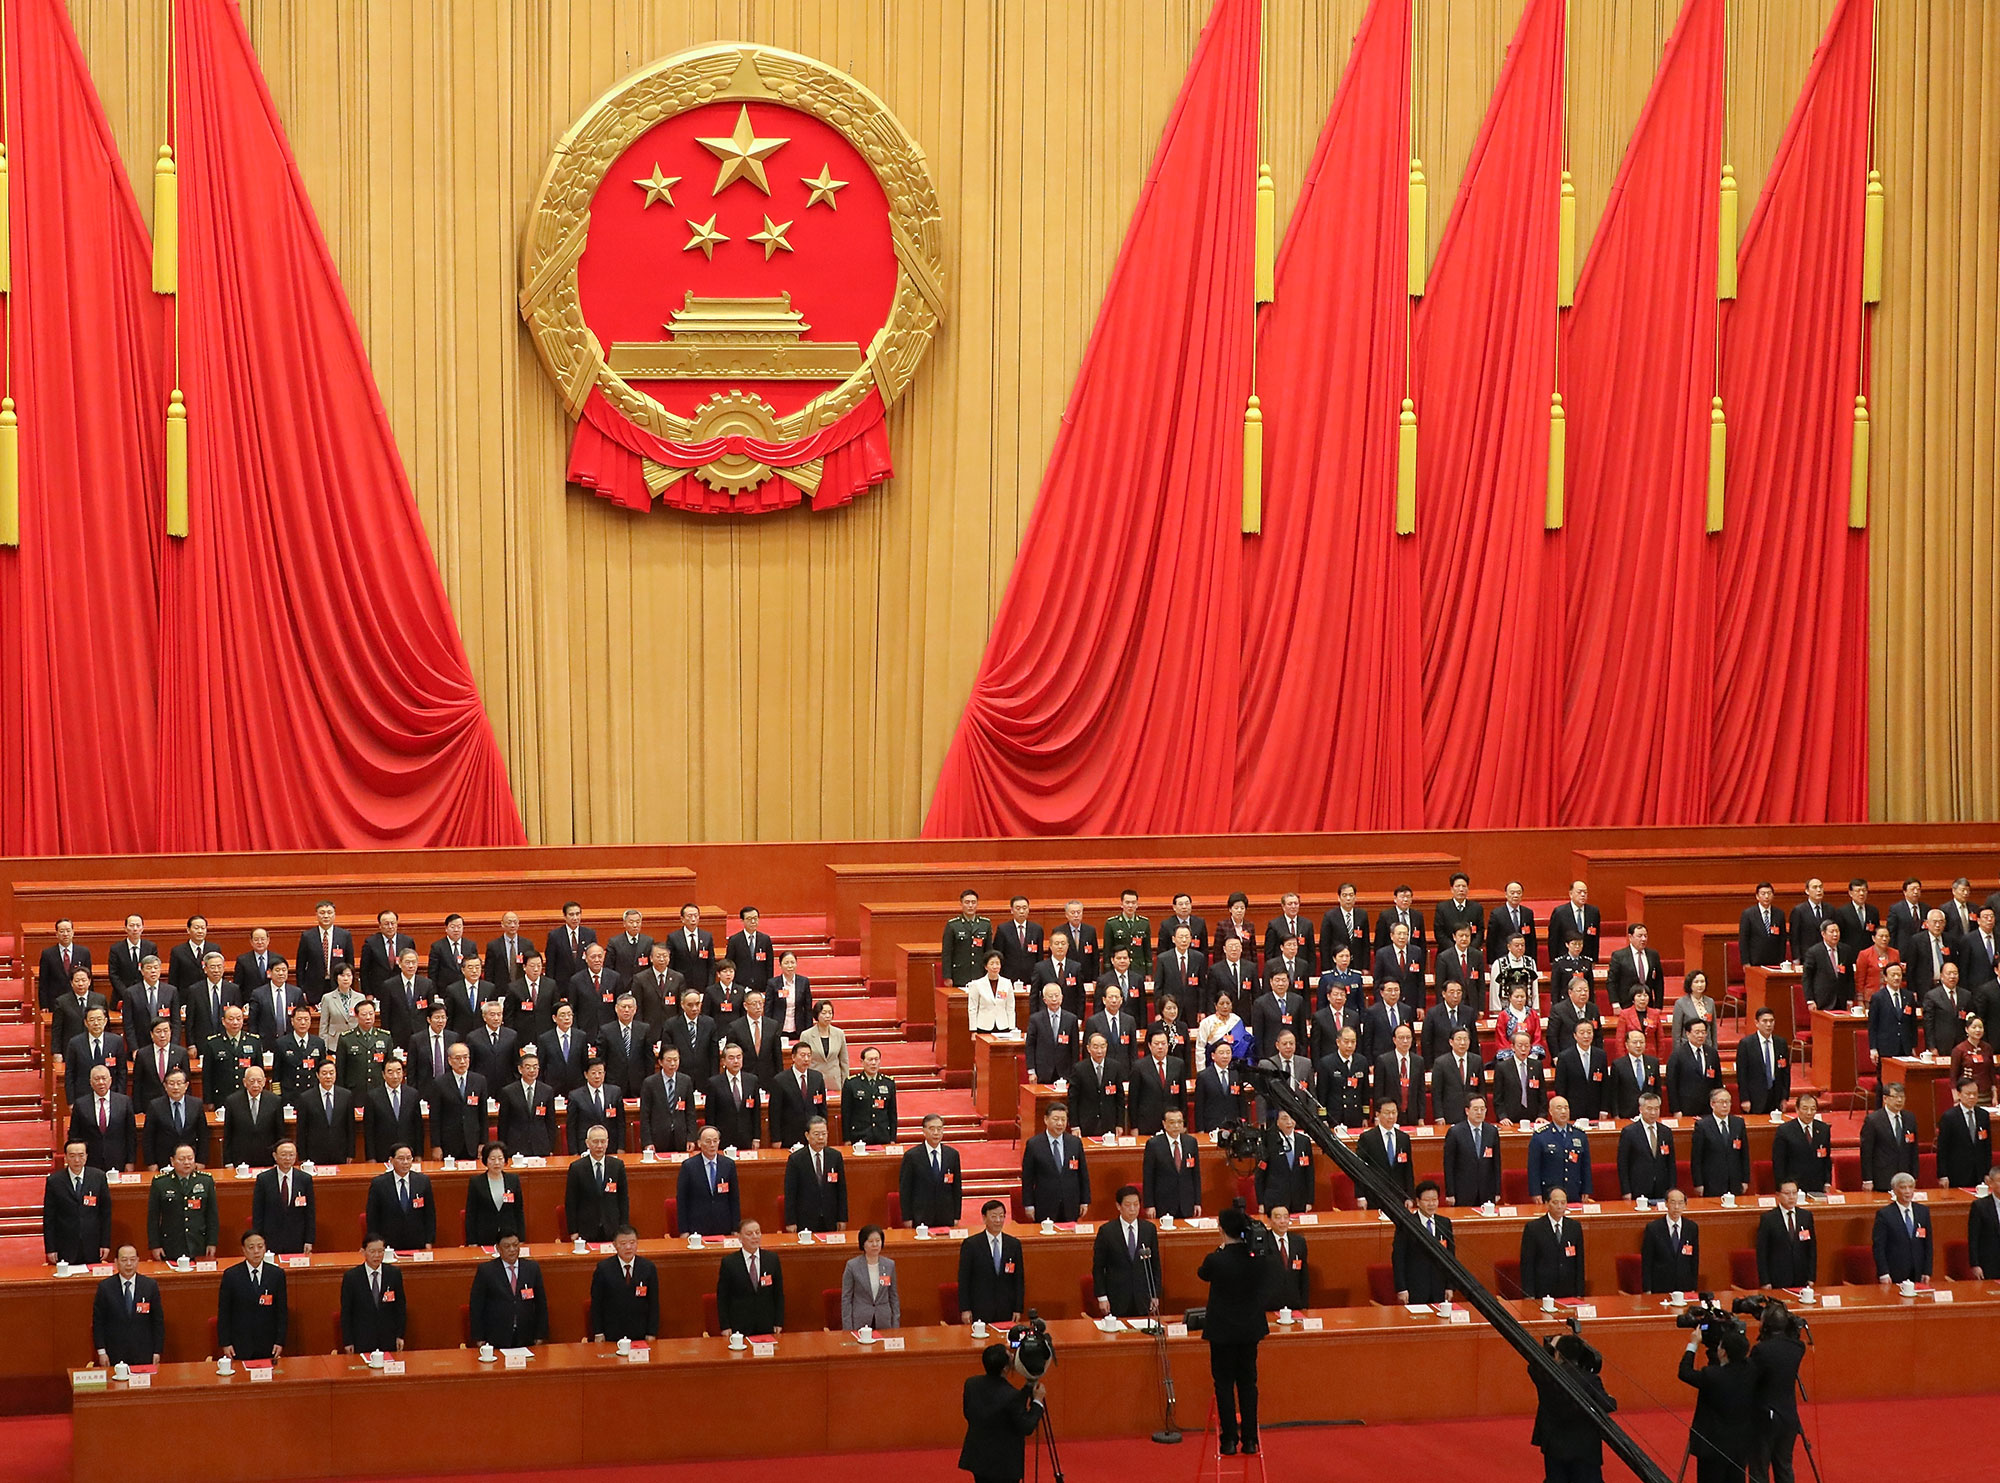 Chinese President Xi Jinping and the other attendees of the fourth and last Plenary Meeting of the National People's Congress stand and listen to the National Anthem at The Great Hall Of The People on March 15, 2019 in Beijing.